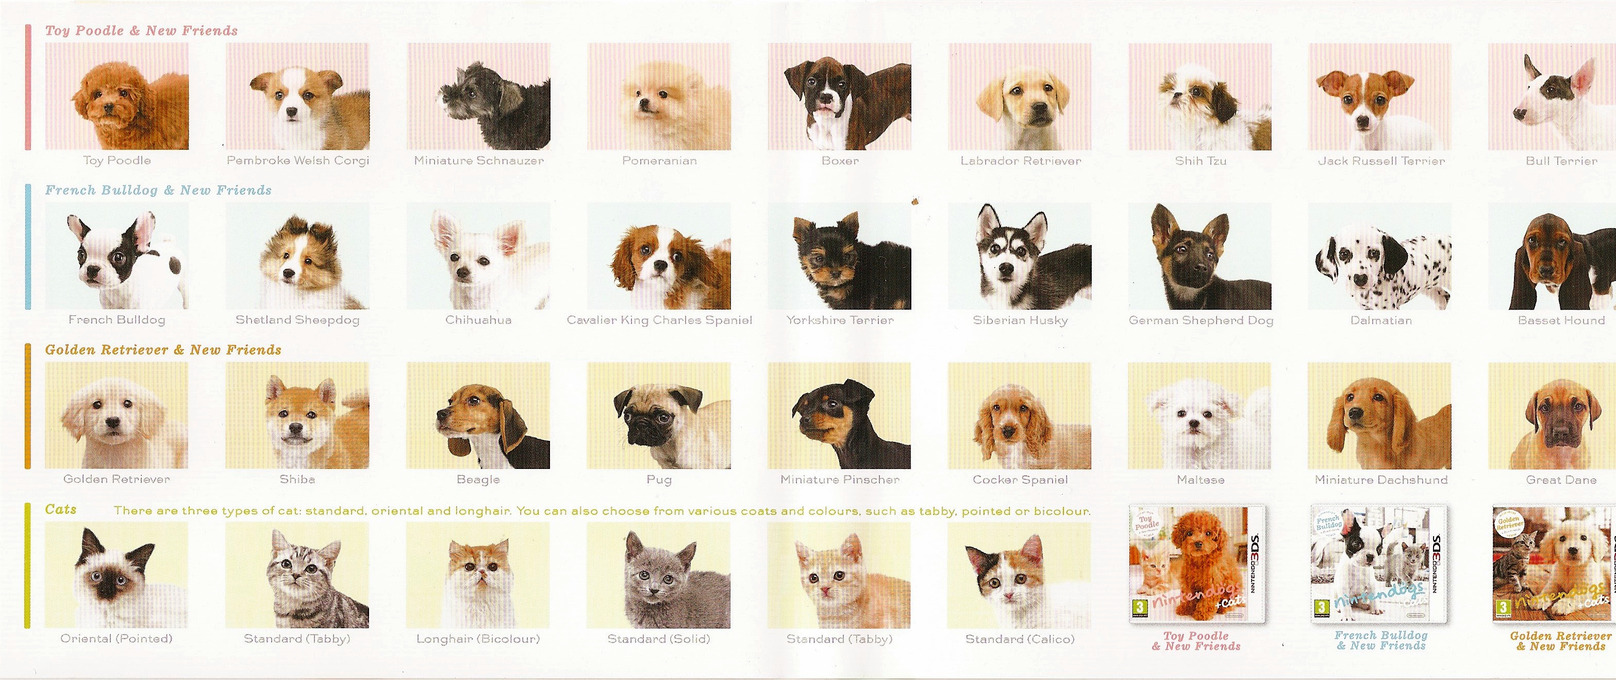 Nintendogs Dog Breeds